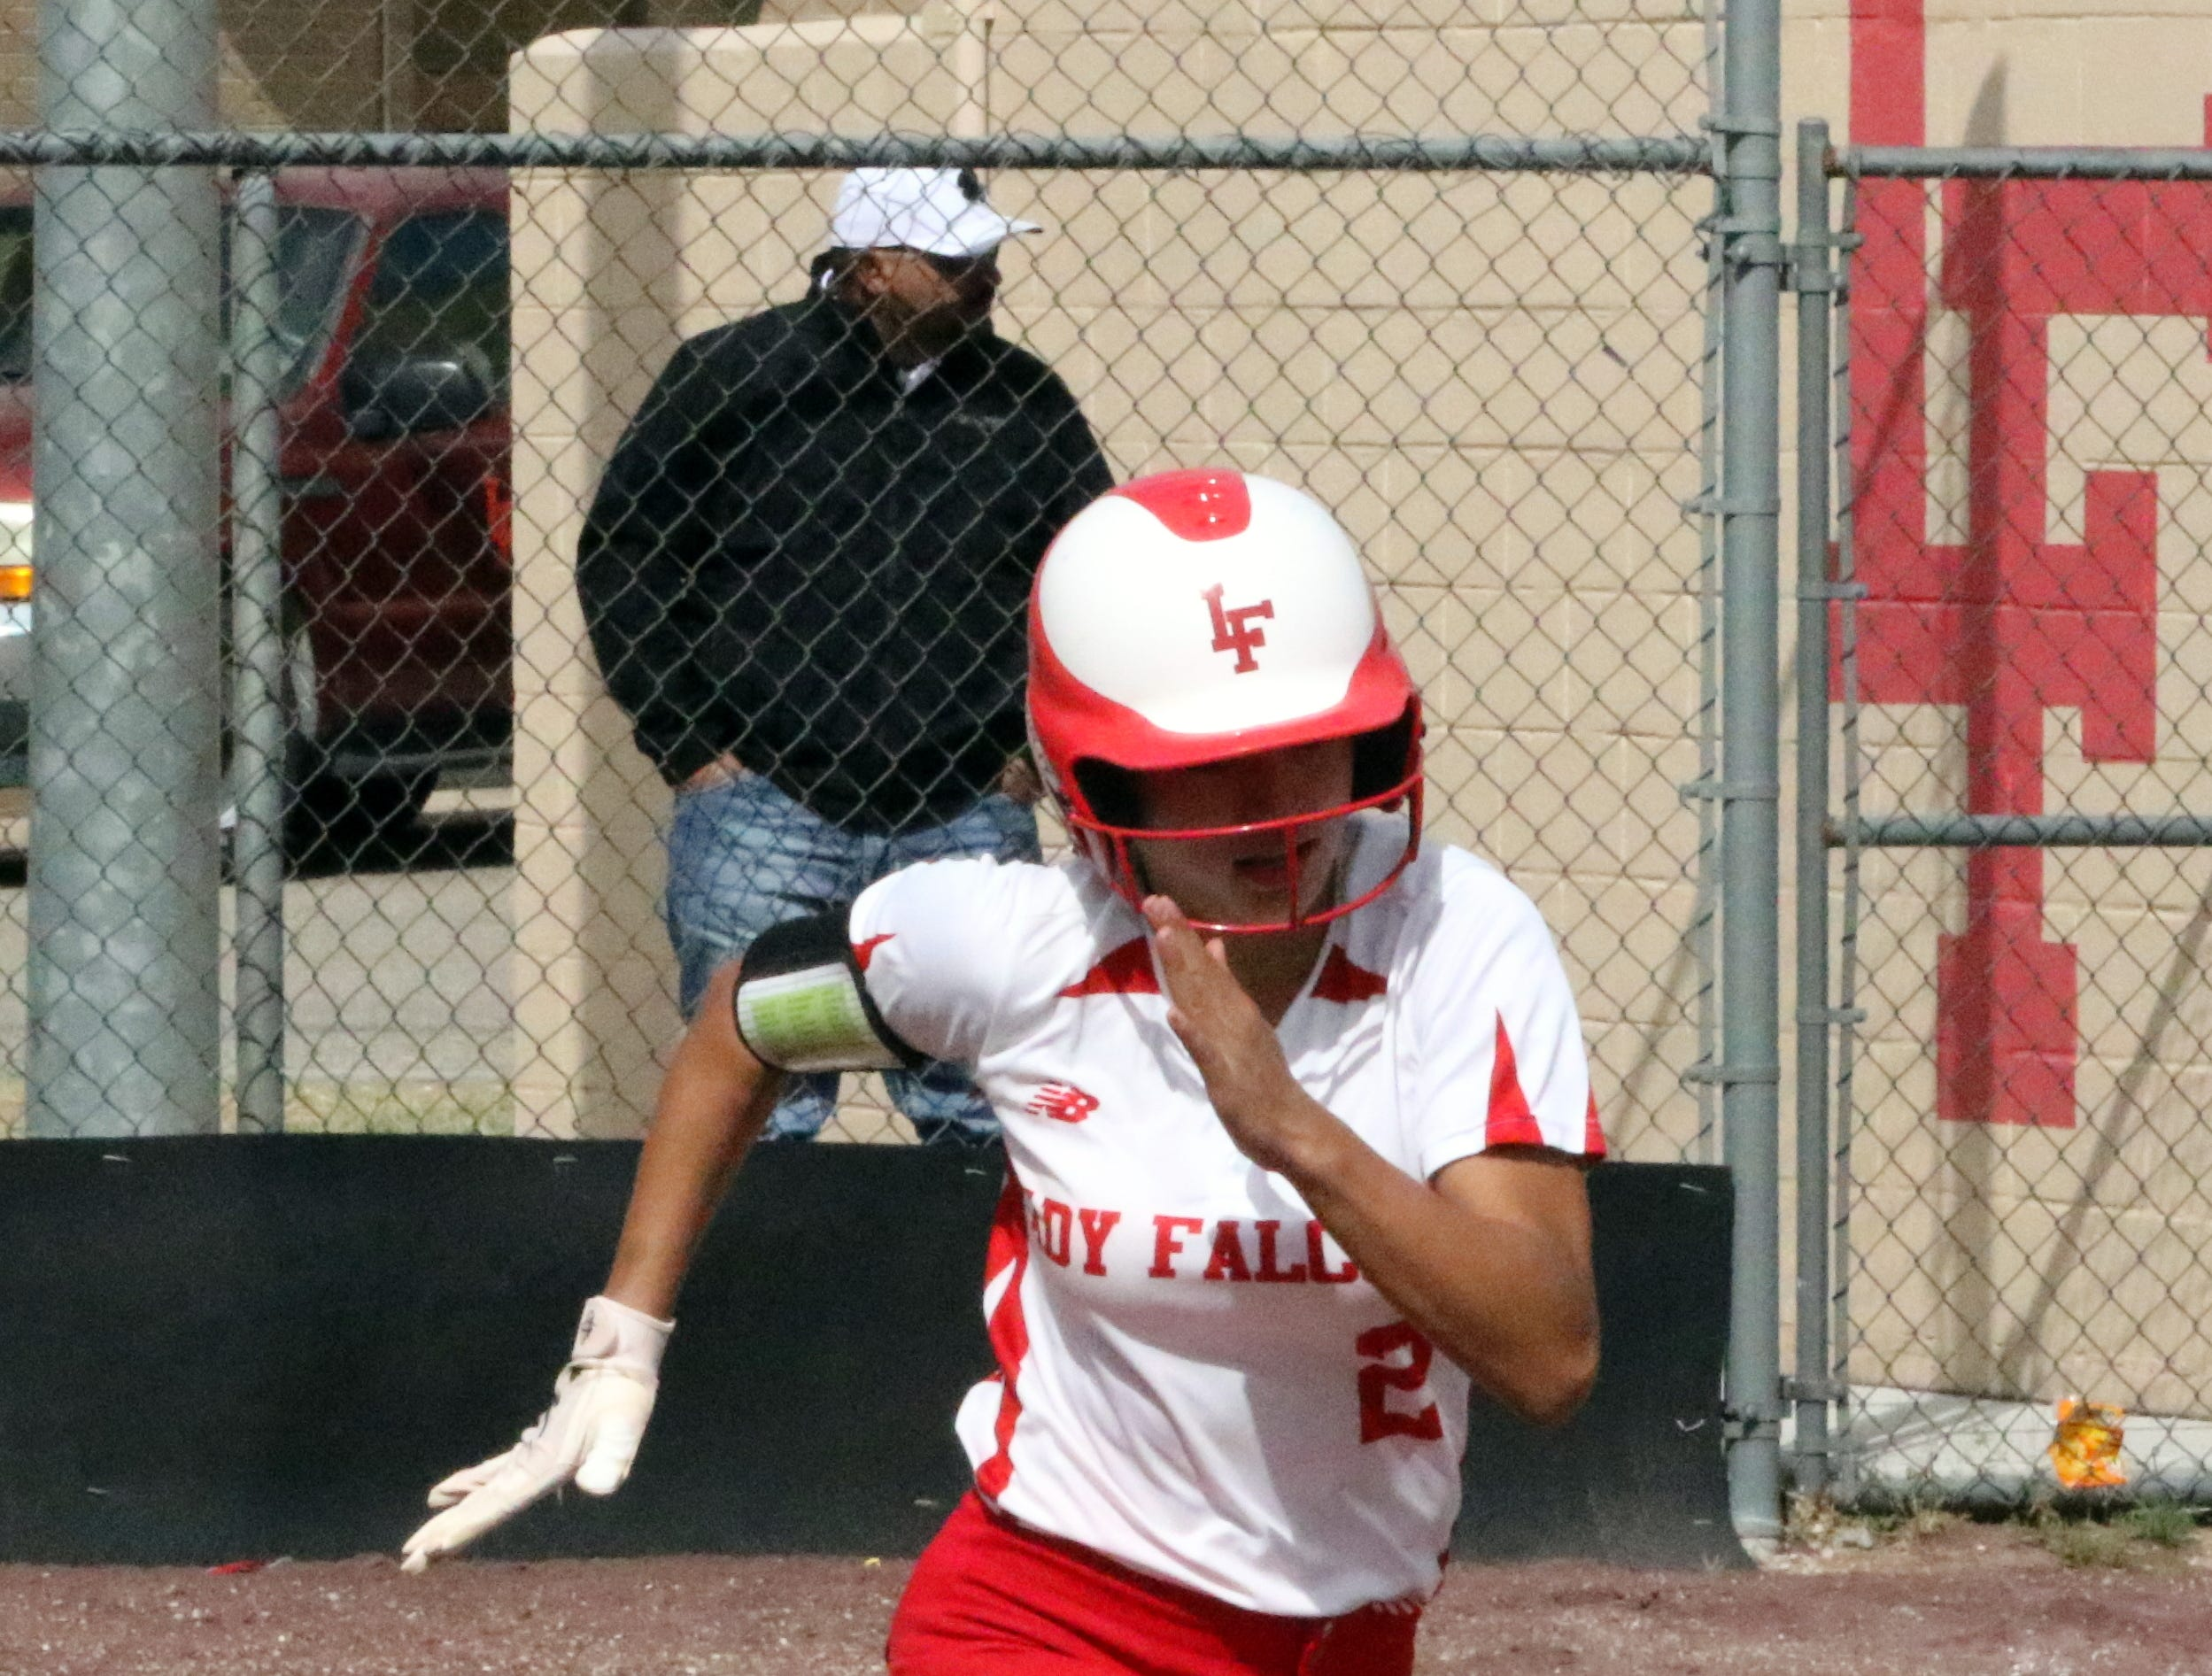 Chastity Onsurez sprints to first base during Game 2 of Saturday's doubleheader. Eunice won Game 1, 13-12 and Loving won Game 2, 16-6.